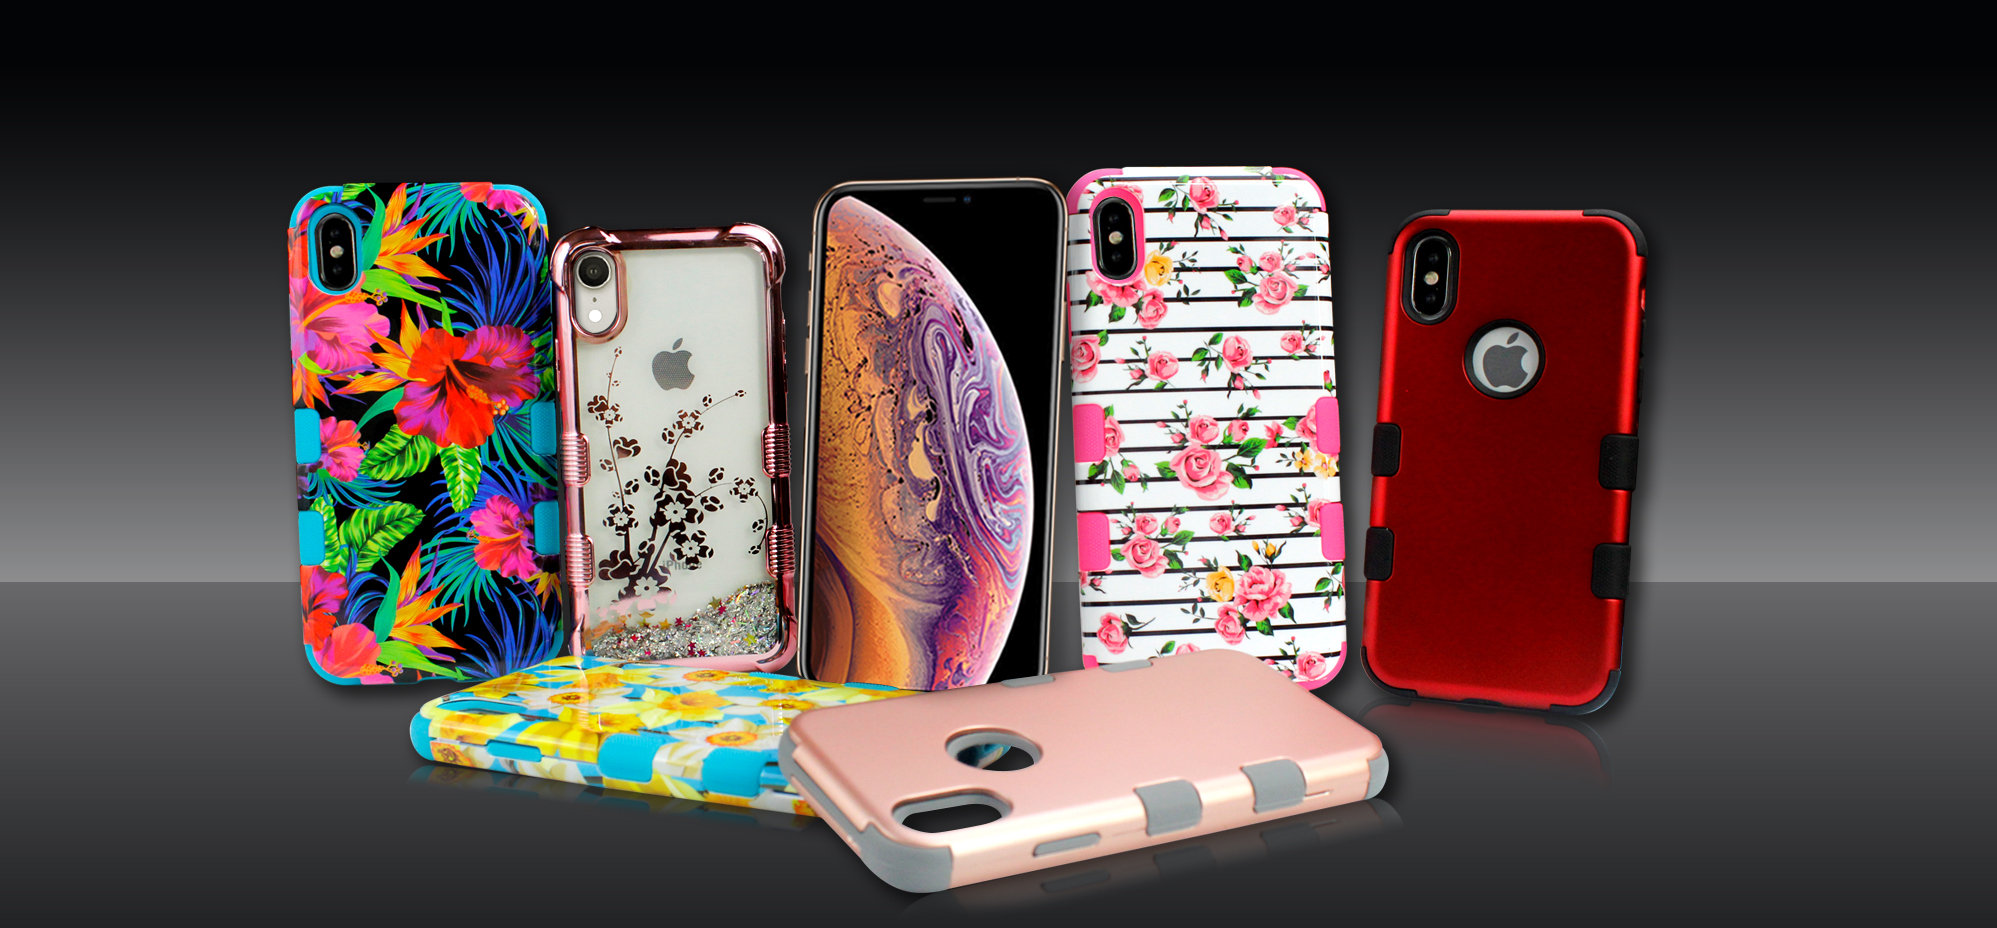 Wholesale iPhone XS Max, XS, and XR Accessories